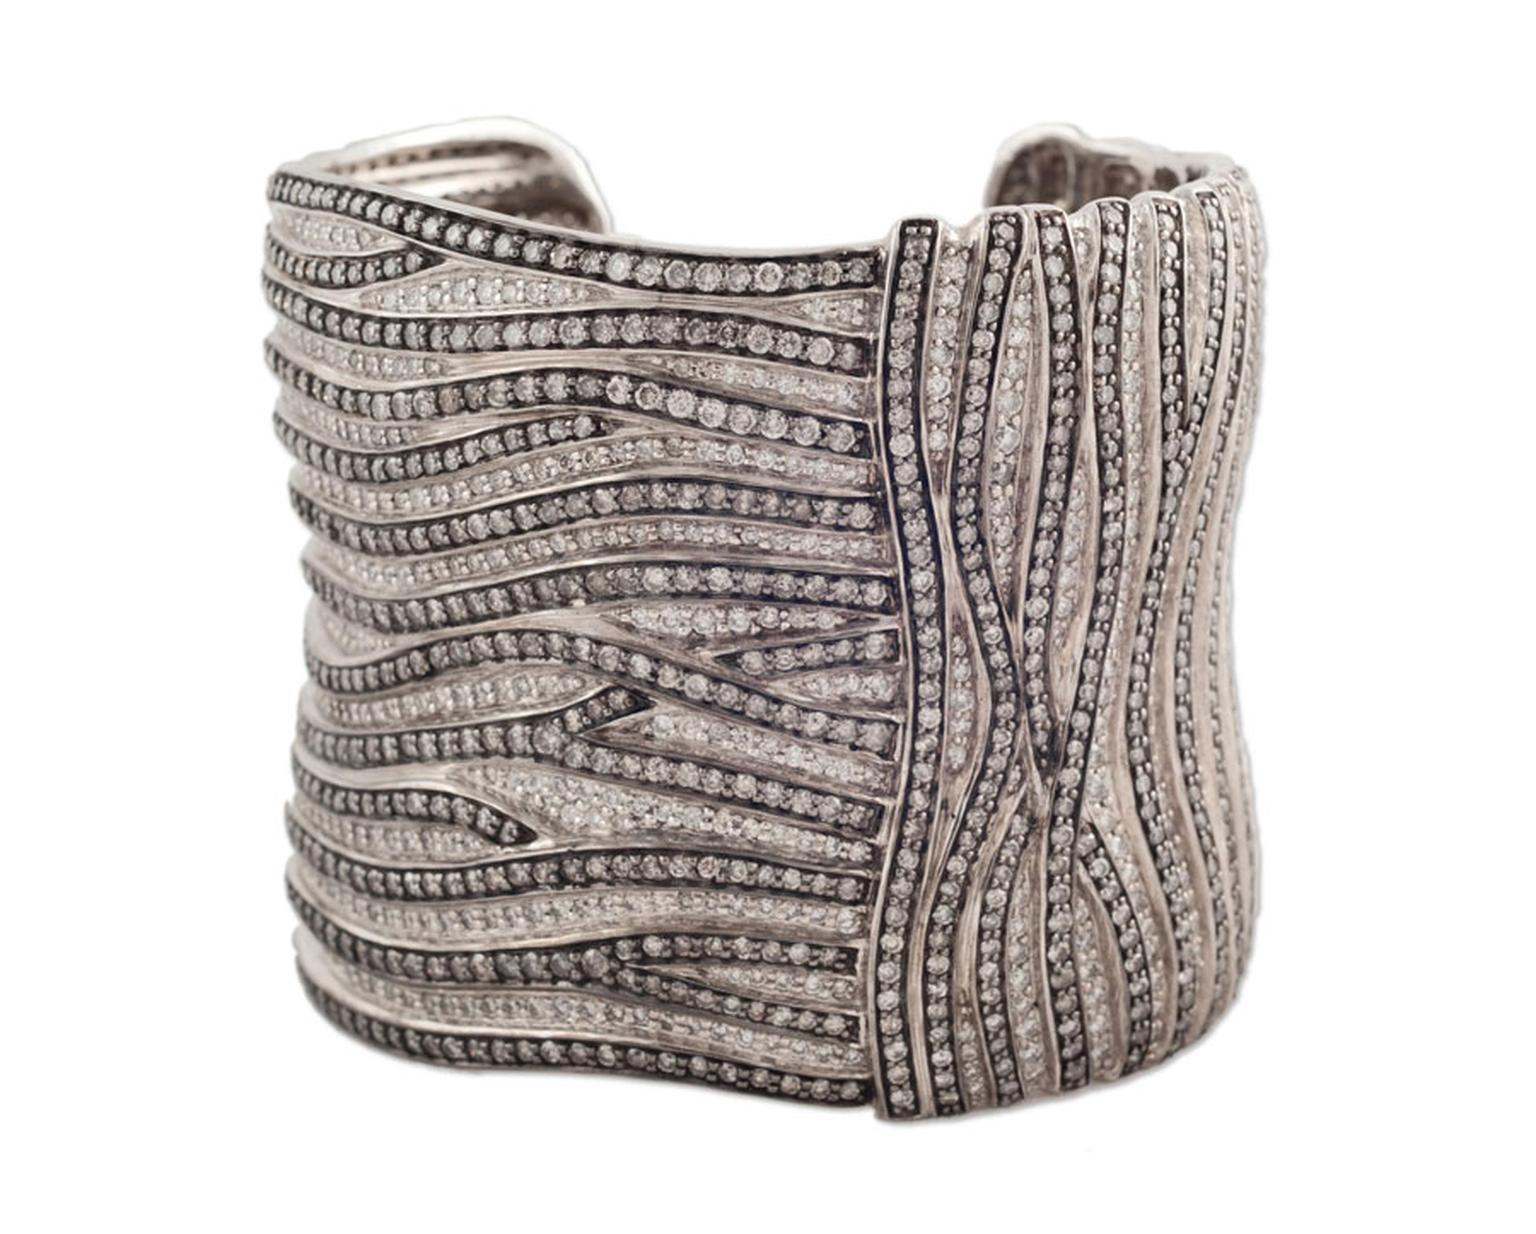 Argyle-Designed-by-Vijayshree--Sovani_manufactured-by-Interjewel-this-marvelous-28-cts-Silvermist--diamond-cuff-is-a-unique-design-set-in-sterling-silver-It-was-worn-by--Tabatha-Coffey-at-the-2012-Oscars